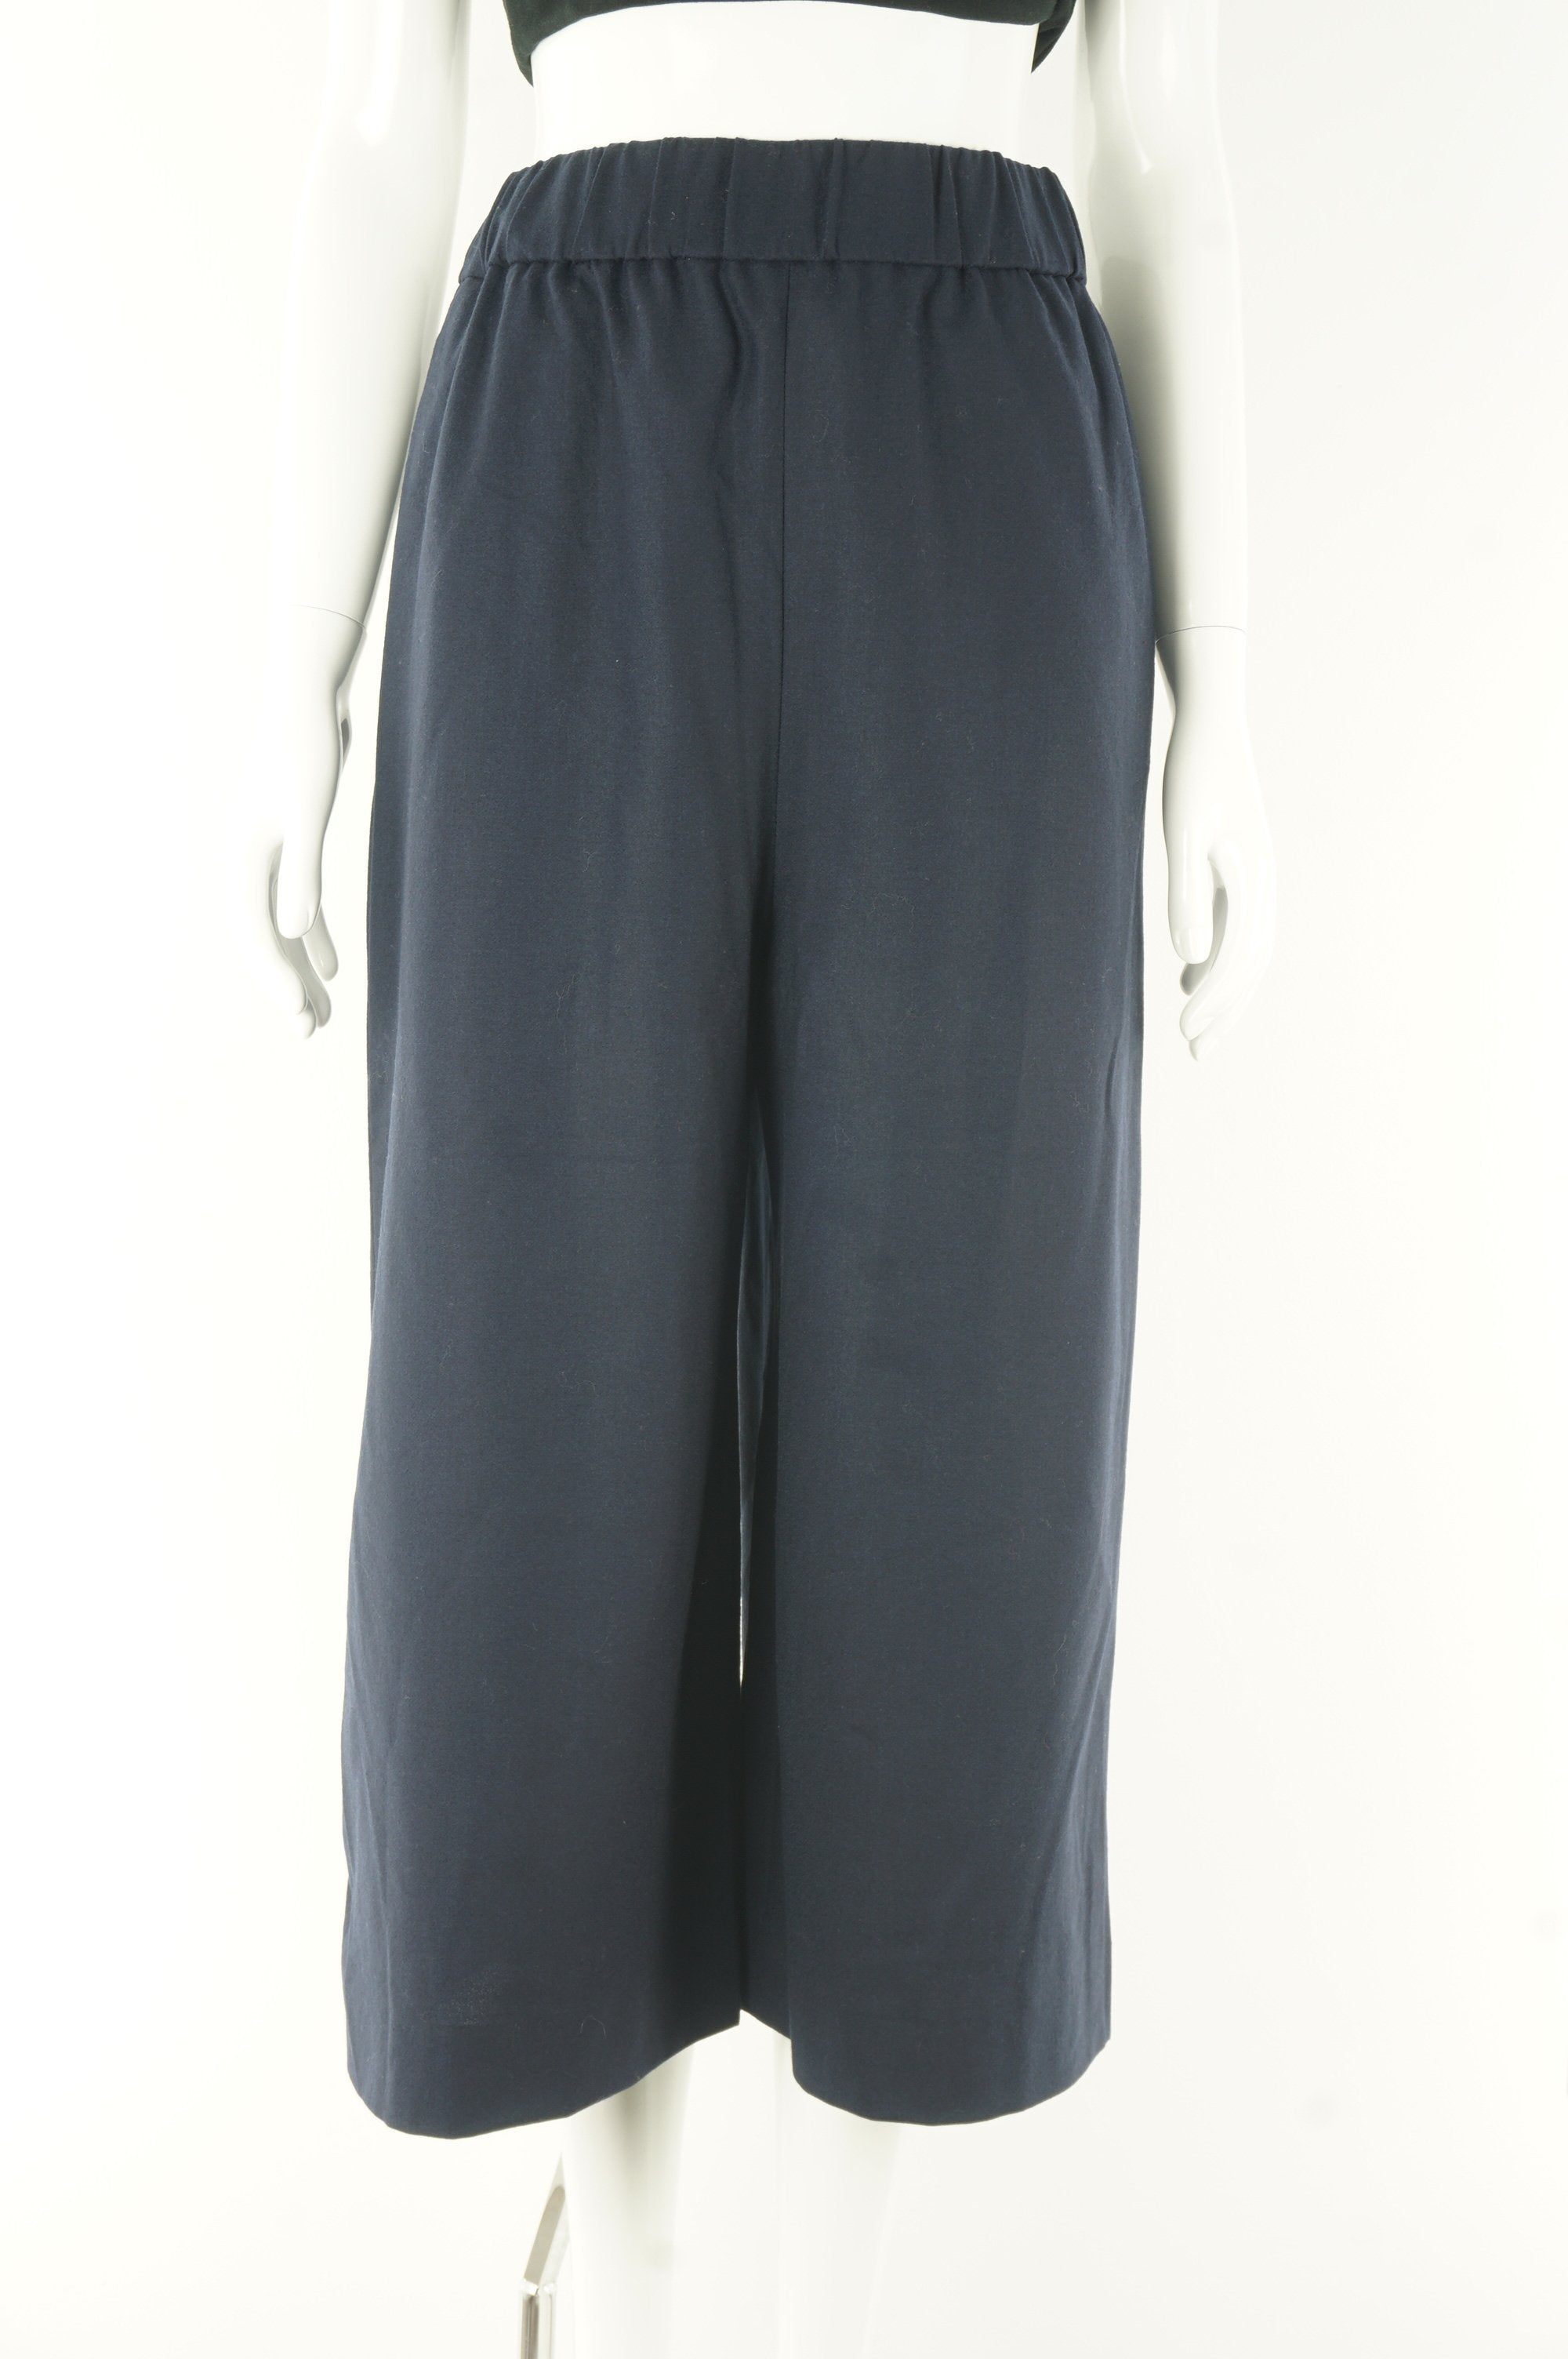 COS Wide Leg Pants With Elastic Waistband, The wide legs and the elastic waist band SCREAMS comfortableness! All natural wool material also guarantees warmth for the winter months., Blue, 96% Wool, 4% Elastane, women's Pants, women's Blue Pants, COS women's Pants, Women's wide legged capri pants, women's wool capri trousers